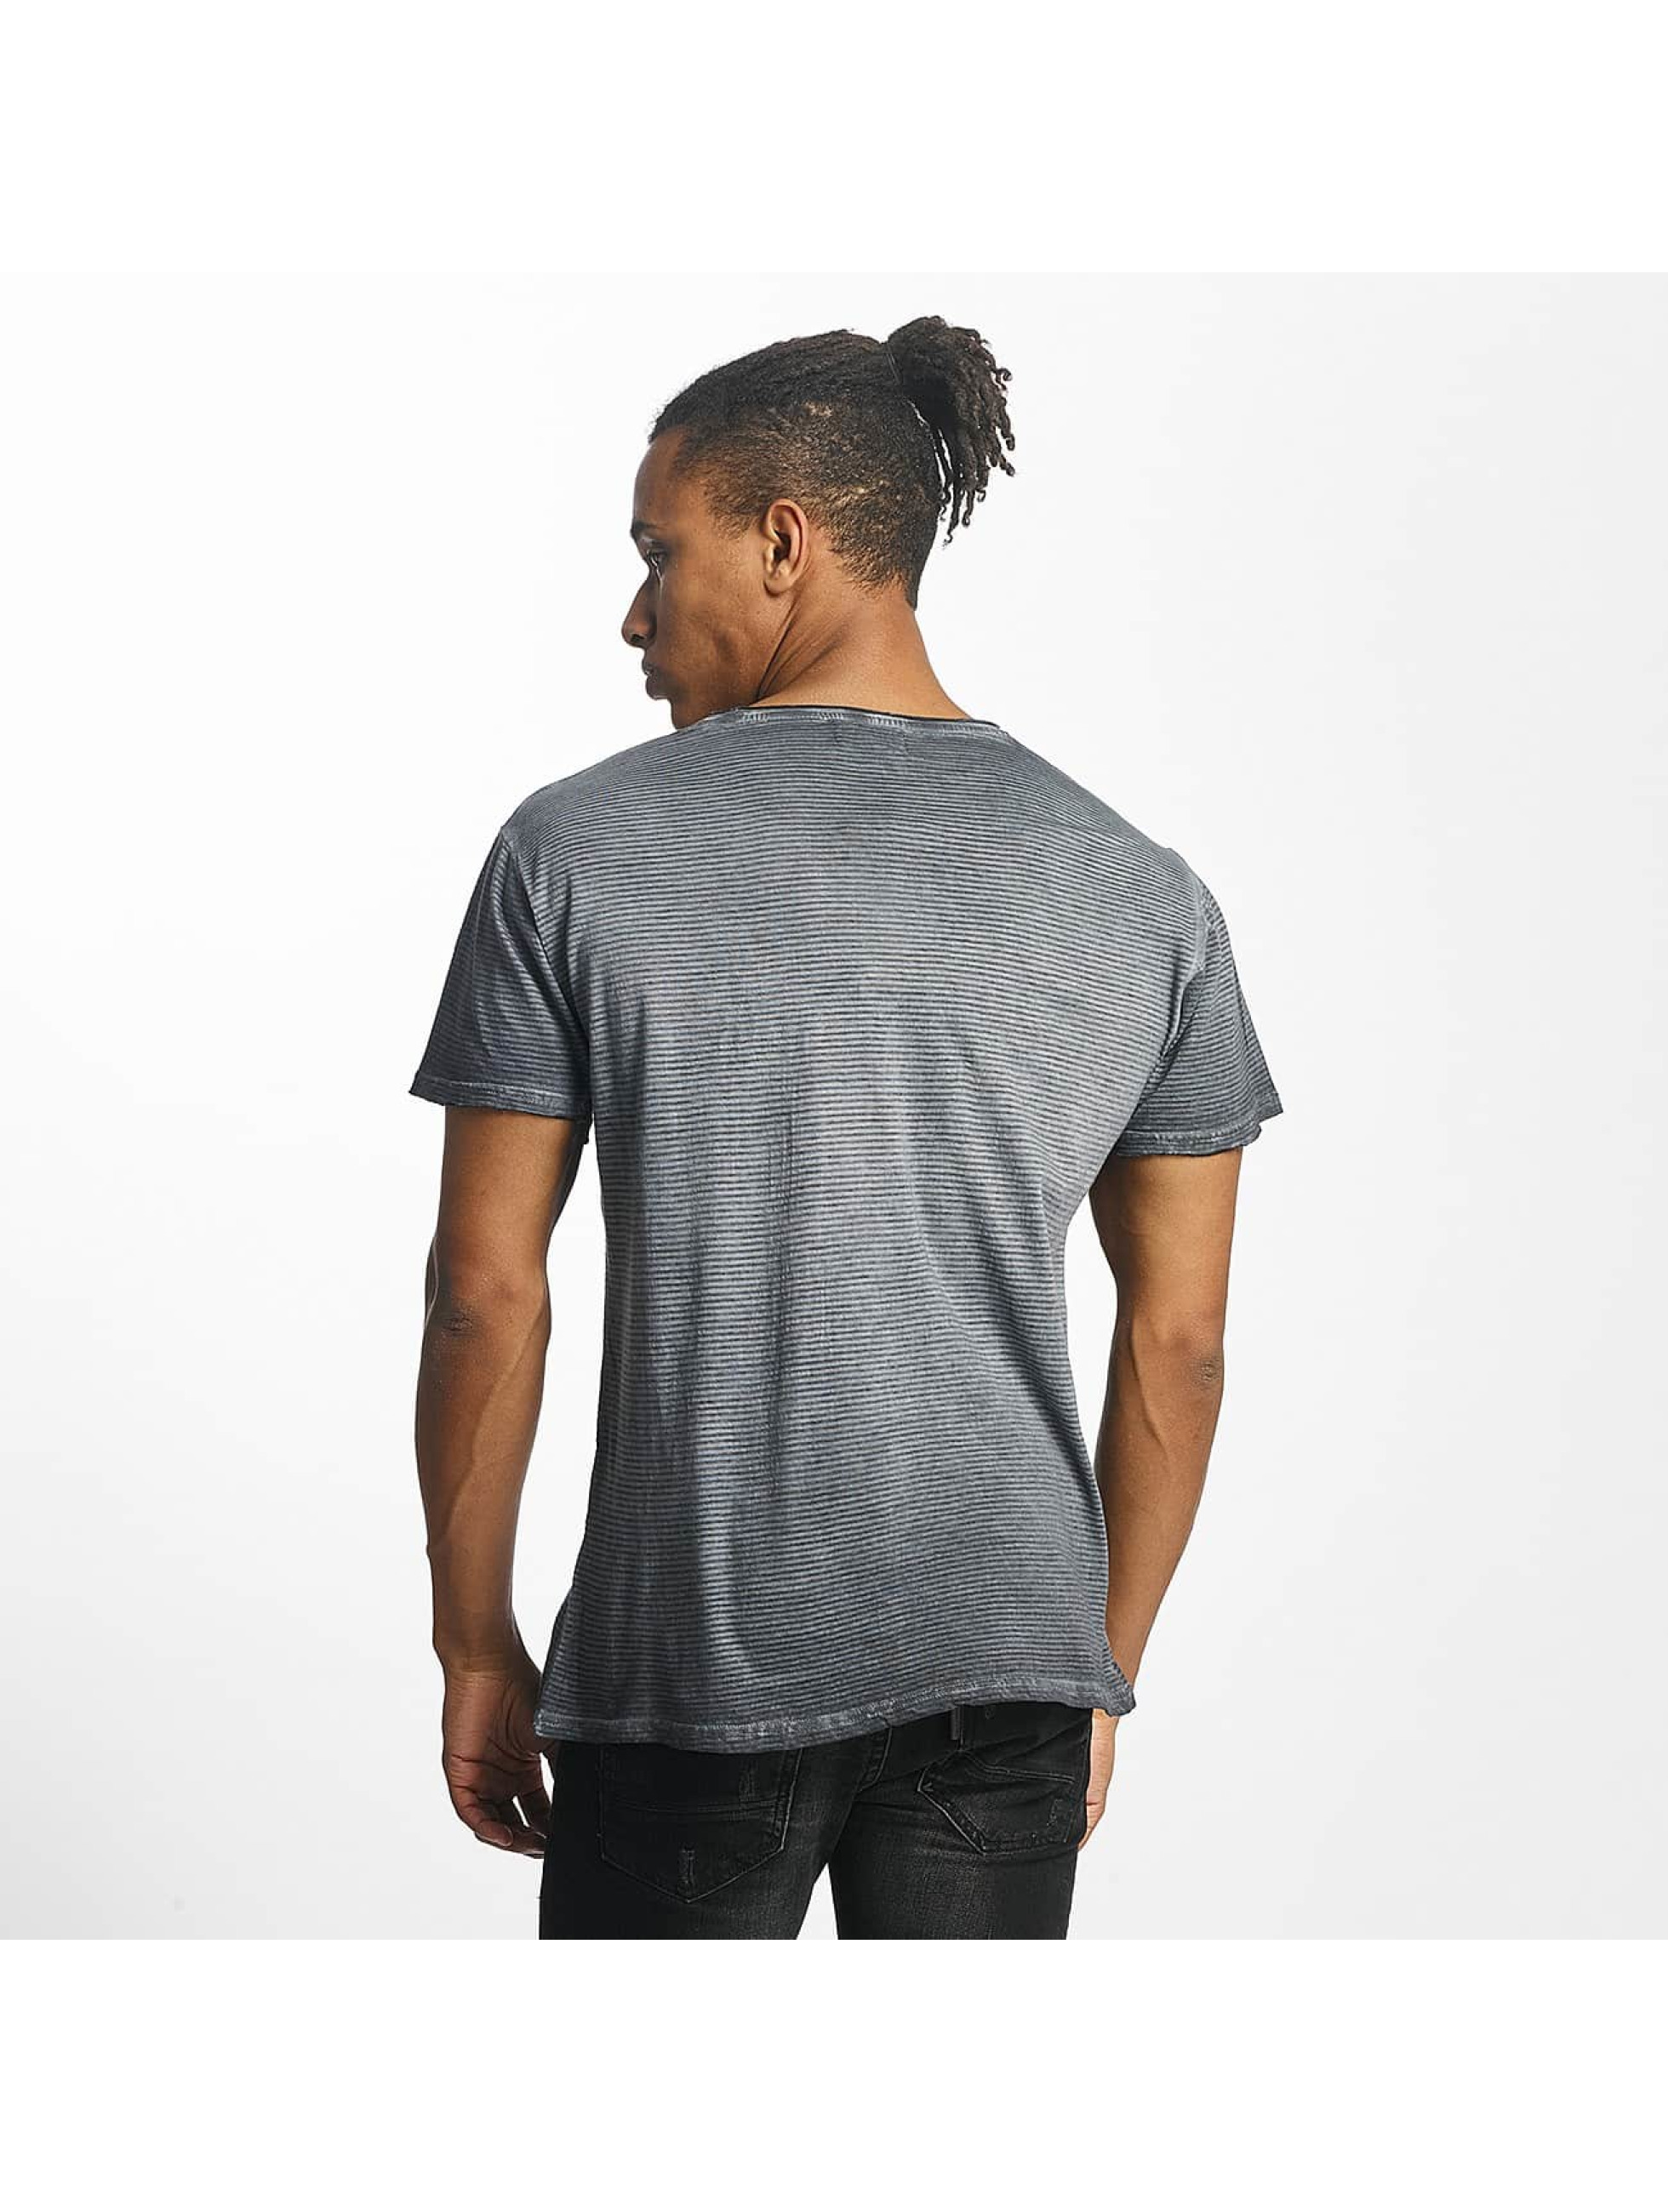 Paris Premium T-Shirt Like Nothing Else gray